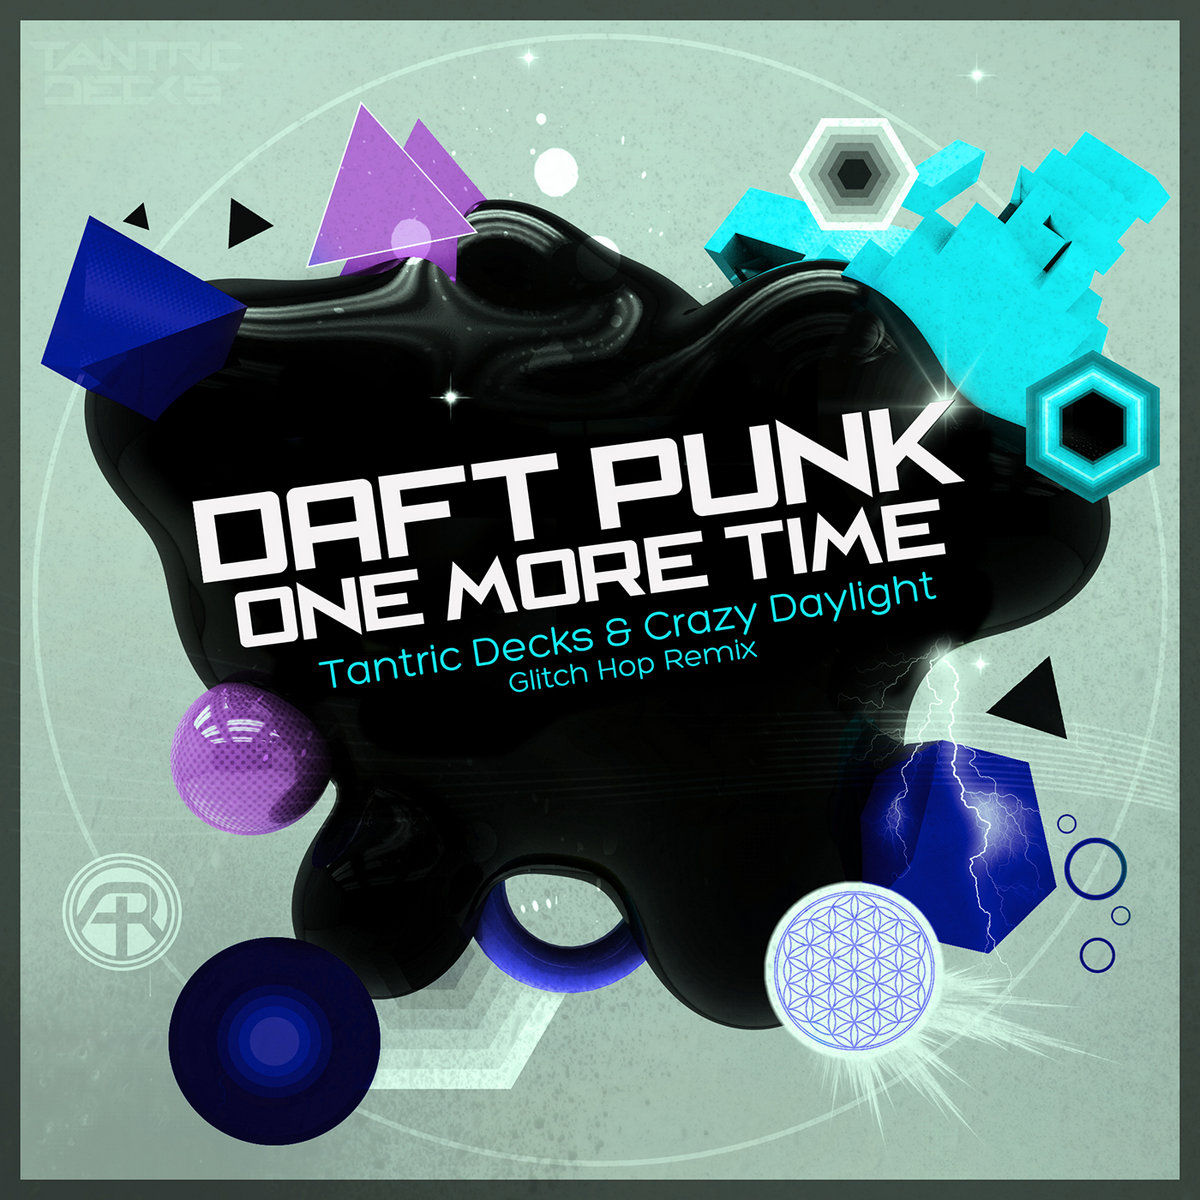 Daft punk one more time ( hotblood remix ) good version to free.